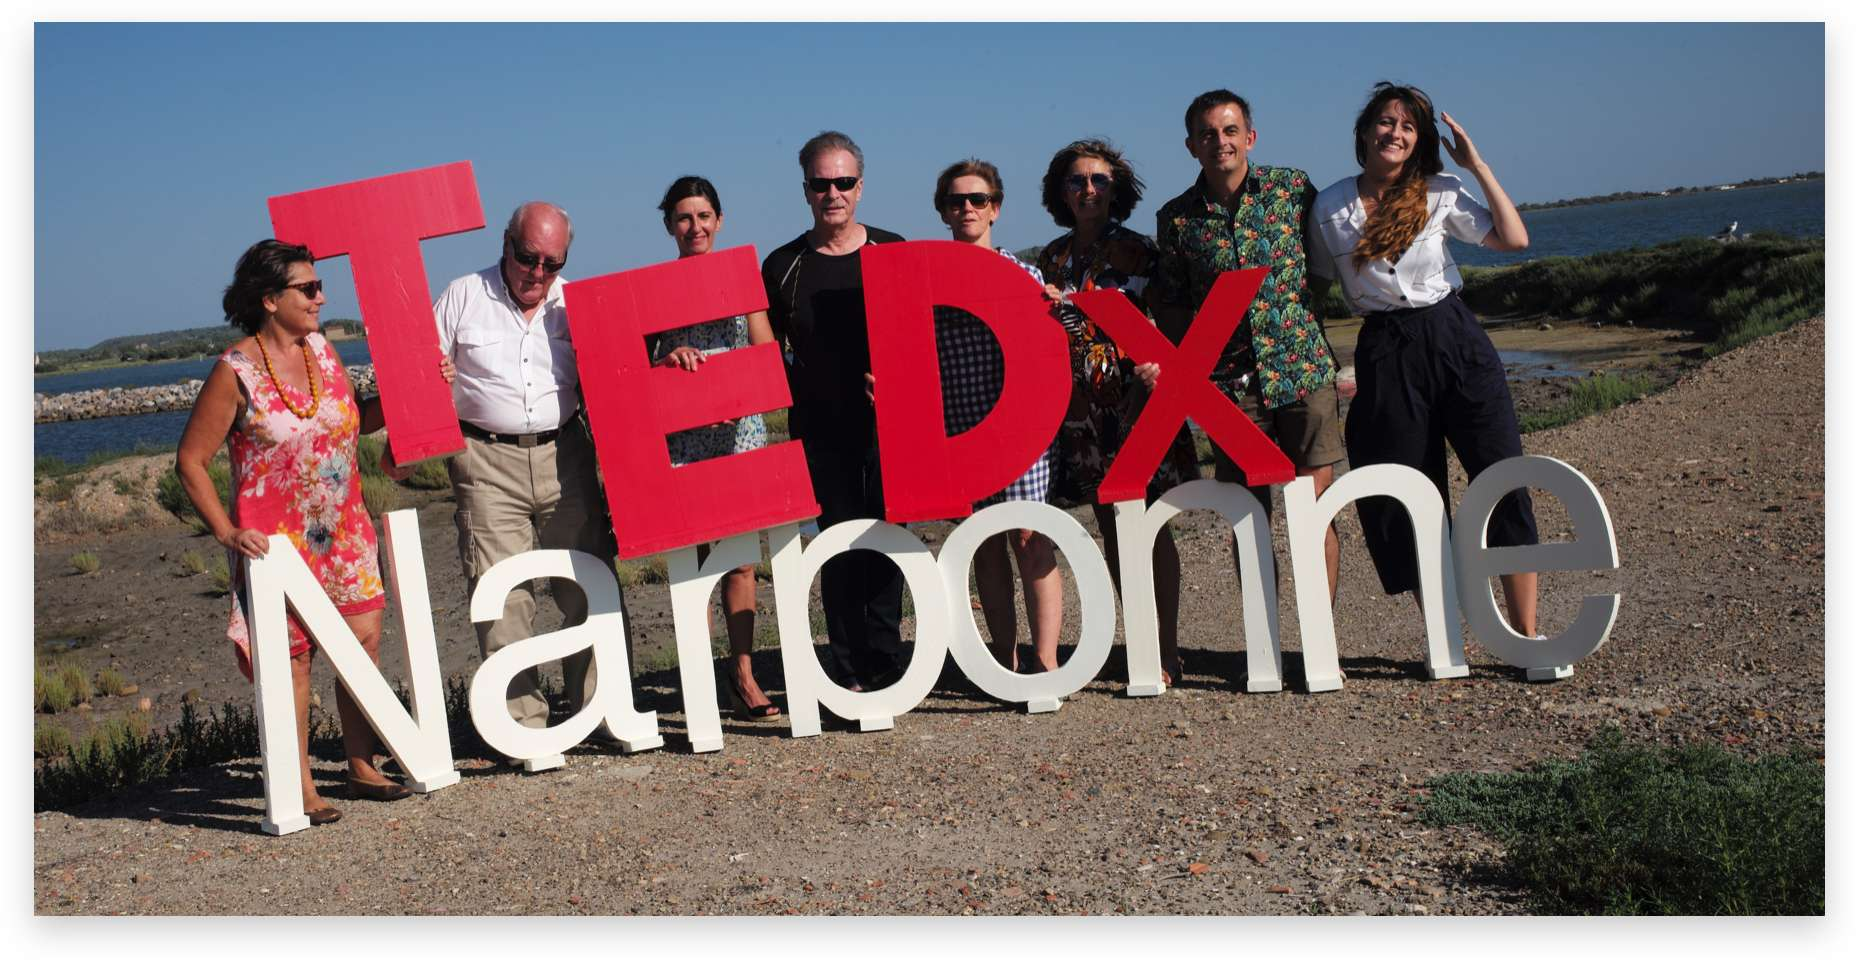 TEDx Narbonne - Equipe